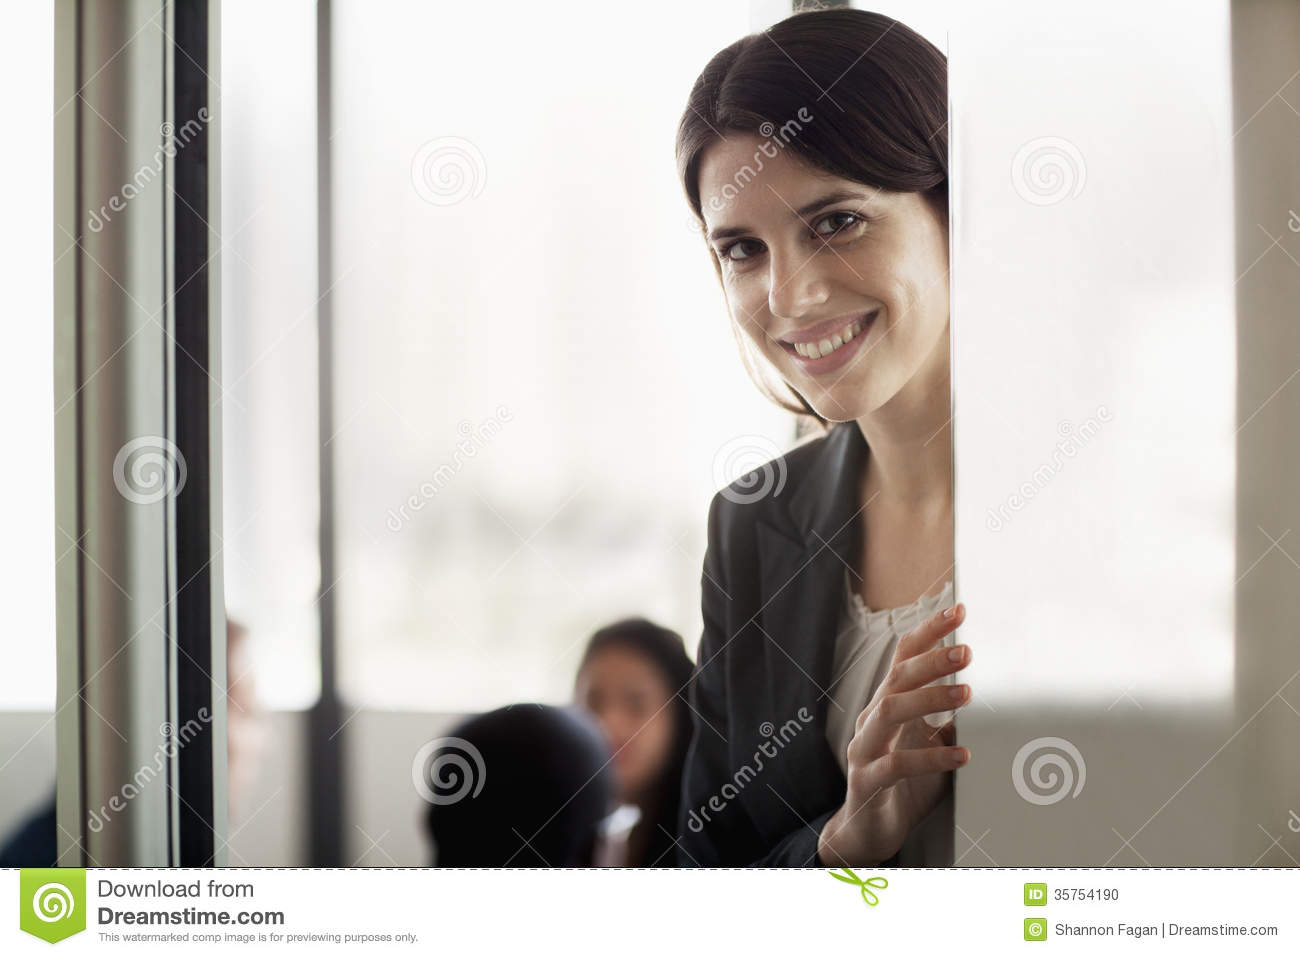 Businesswoman looking at the camera and smiling during a business meeting